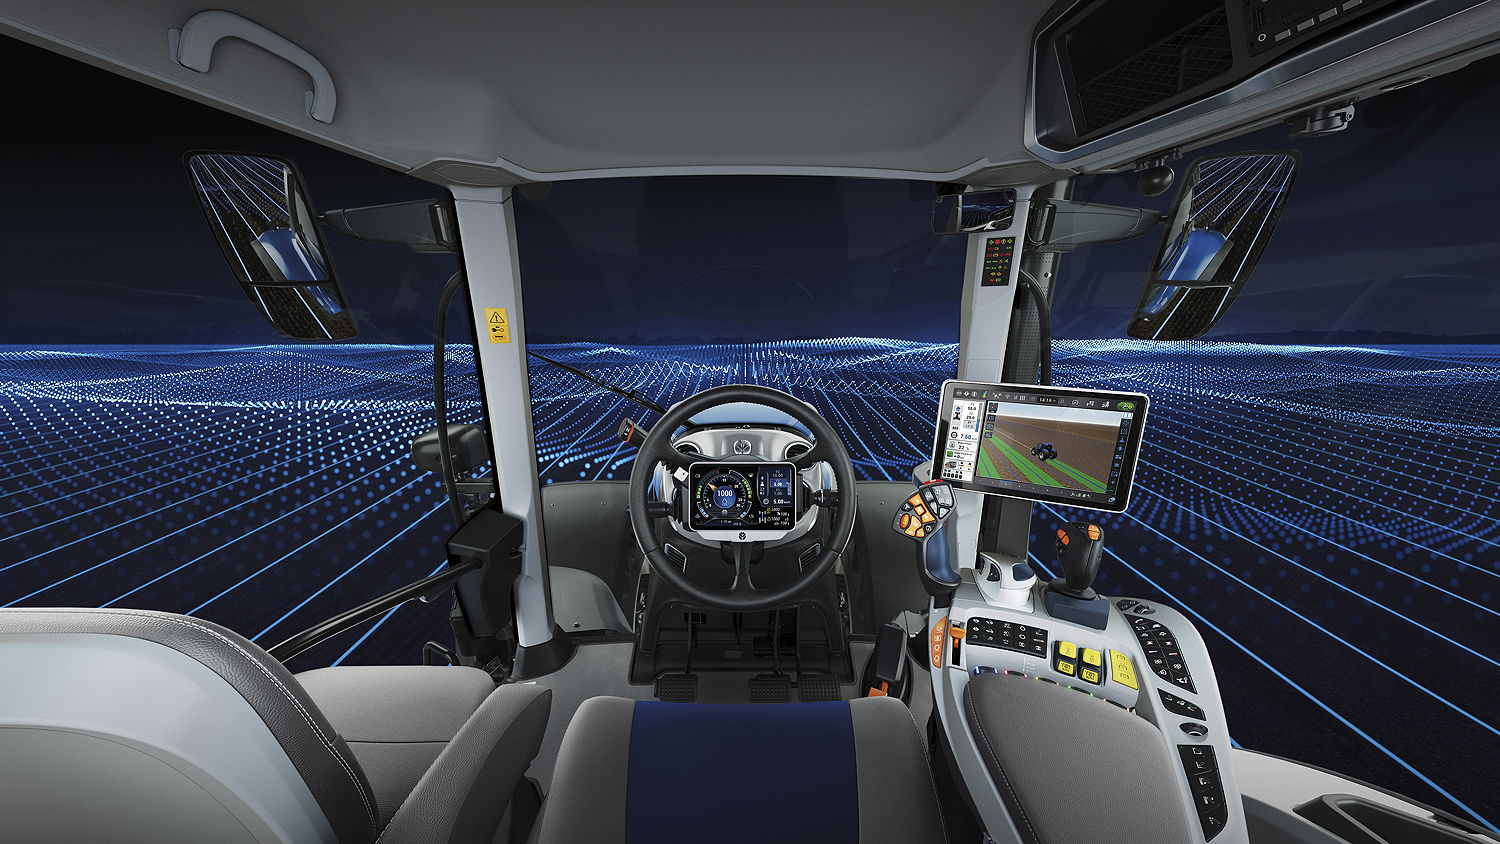 The Horizon Ultra cab on the new T7HD tractors features the new CentreView display placed in the centre of the steering wheel – an industry first – that helps provide the operator with a clear line of sight